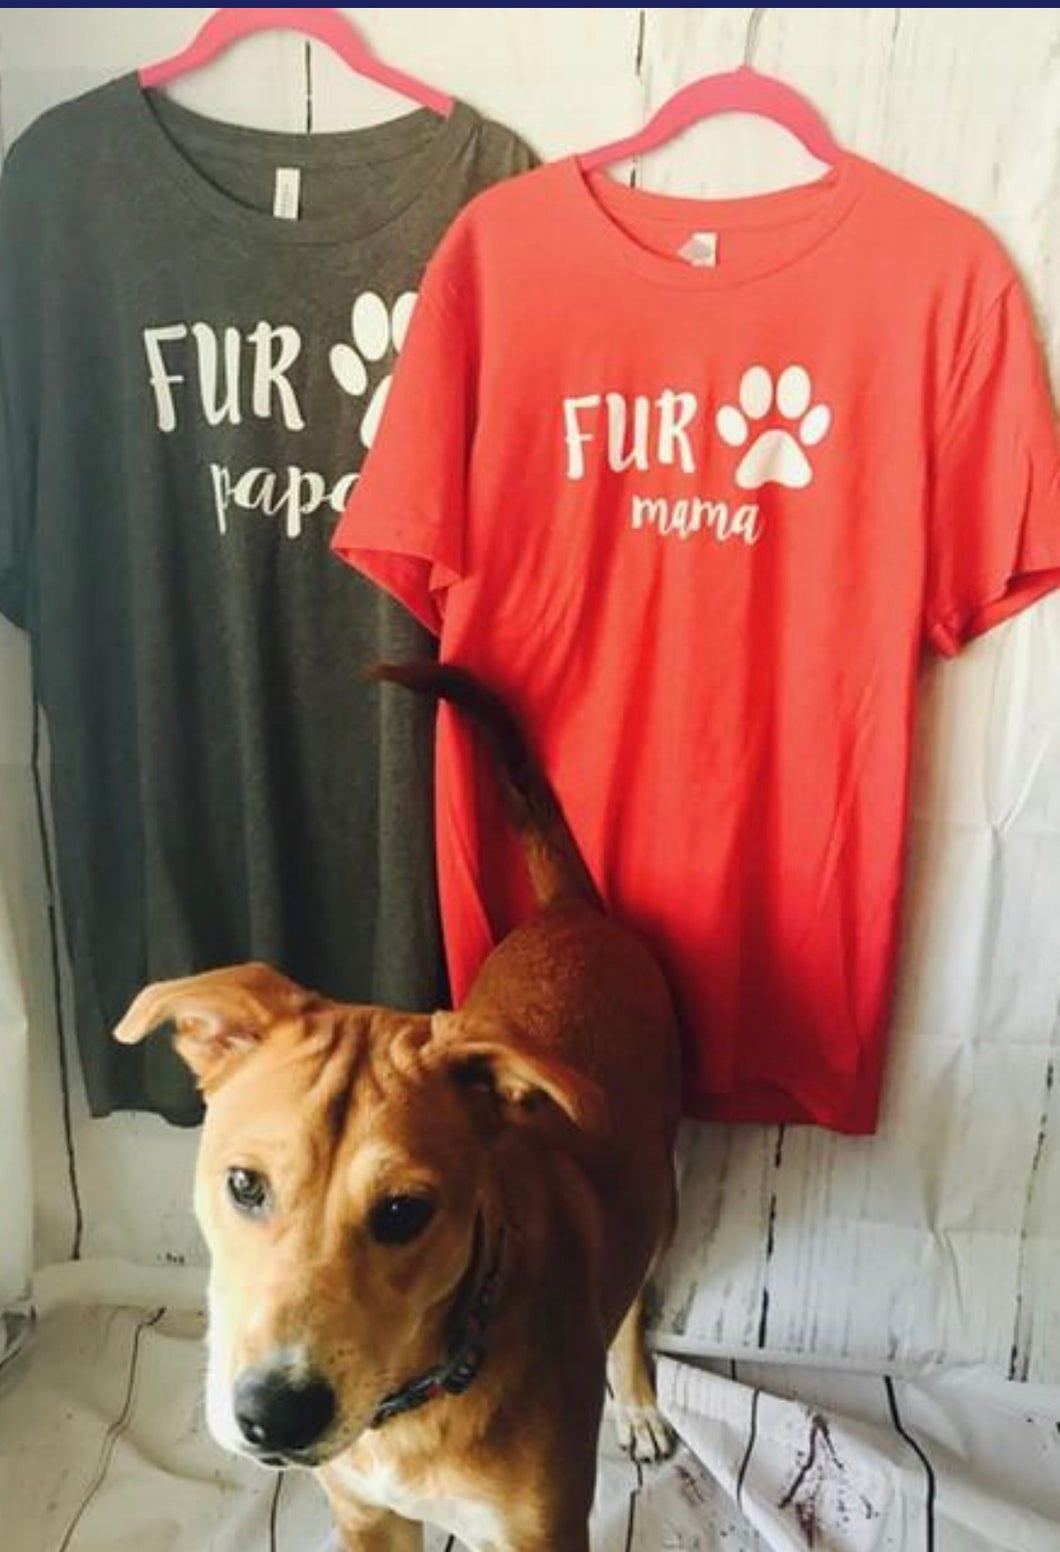 Fur mama or fur papa dog print custom tshirts - Mavictoria Designs Hot Press Express